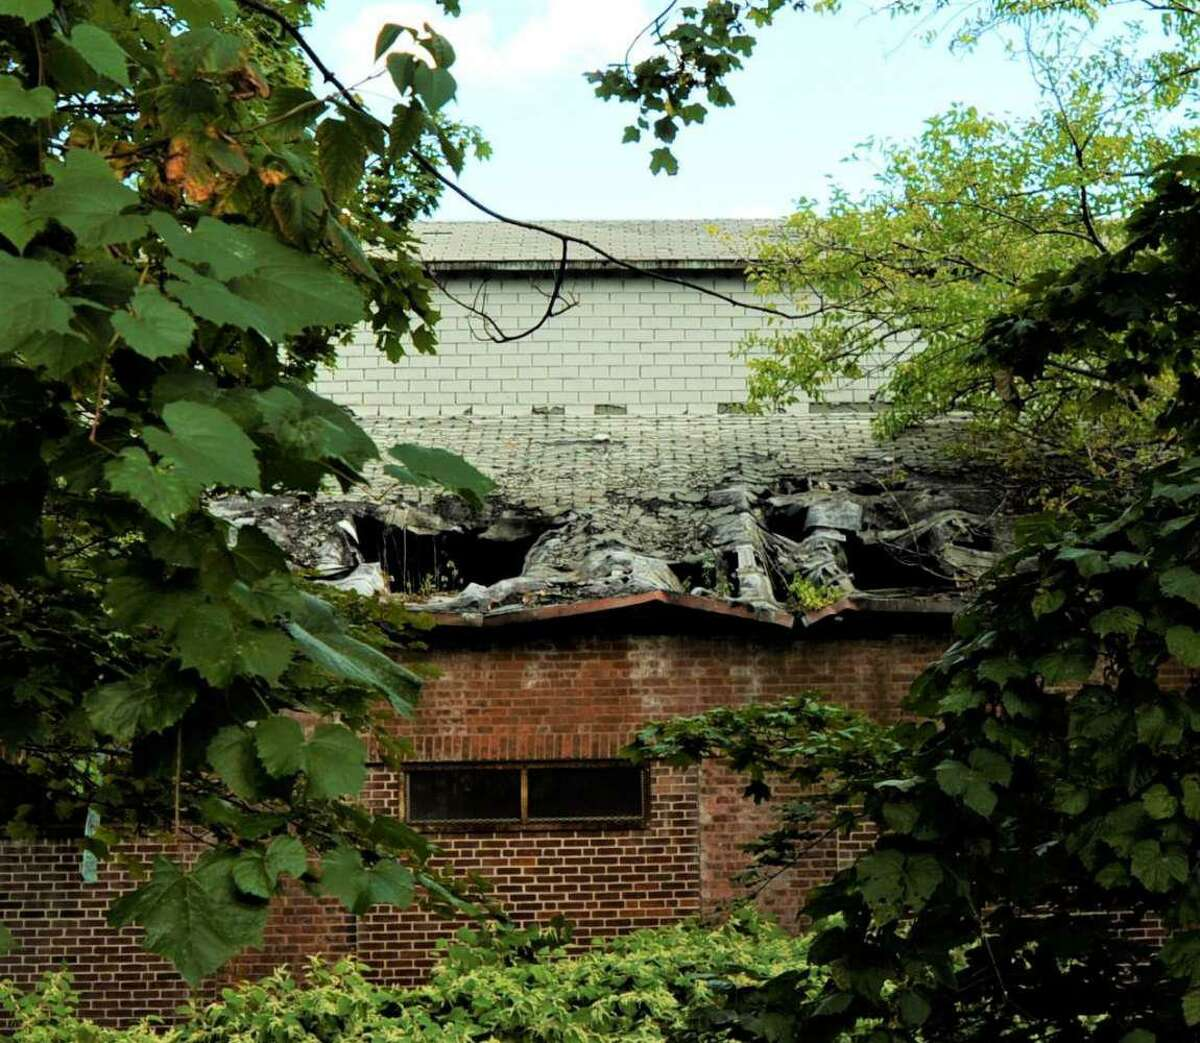 File photo. The abandoned factory at 33 E. Franklin St. - the 3-acre site of the condemned industrial building owned by Danbury that City Hall would like to sell.